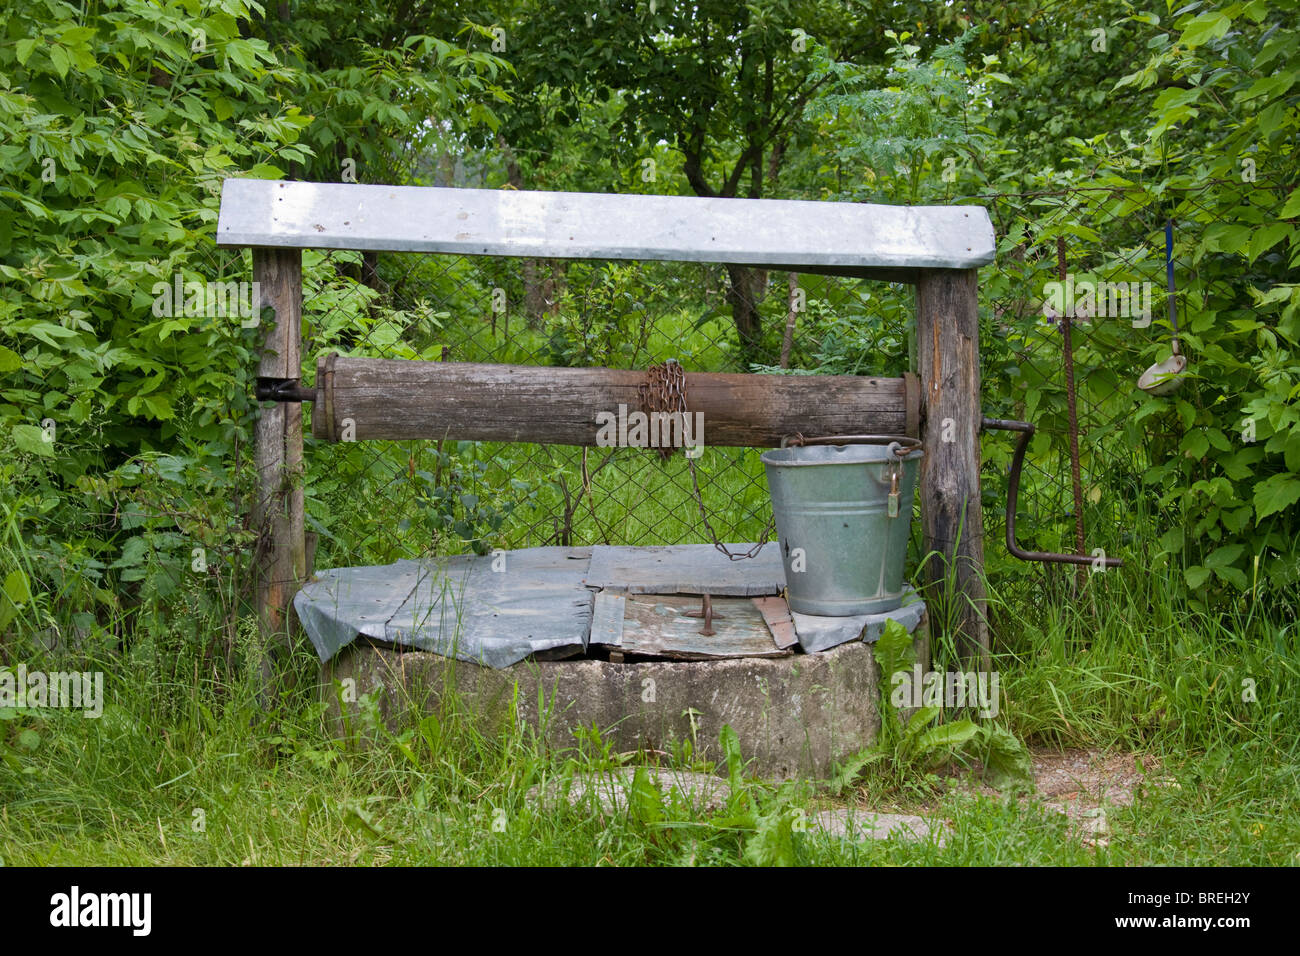 An old well still in use. - Stock Image